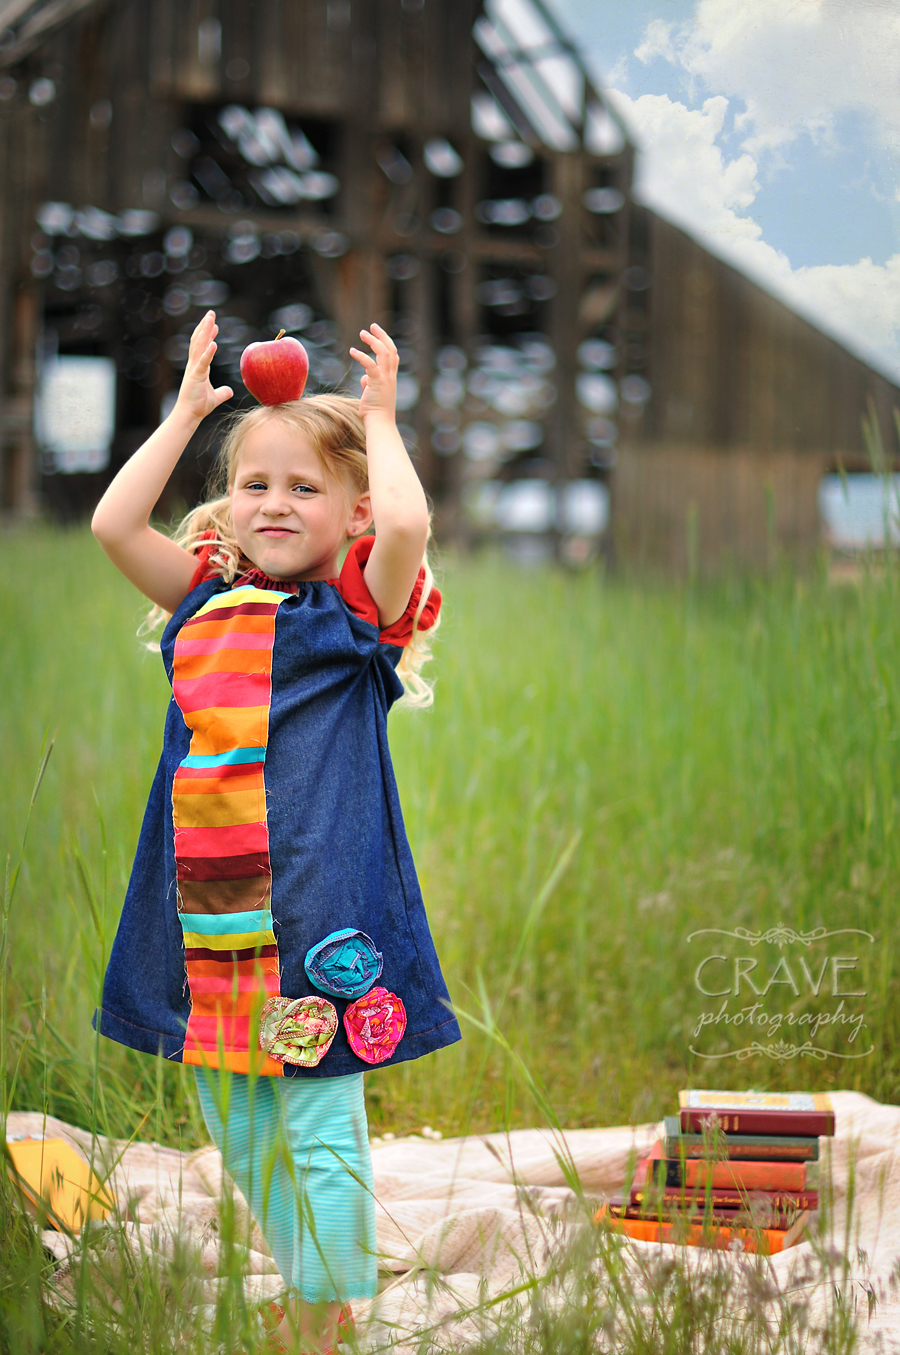 crave5 Contest: Win ZozobugBaby Photography Clothing for Kids Contests Discounts, Deals & Coupons